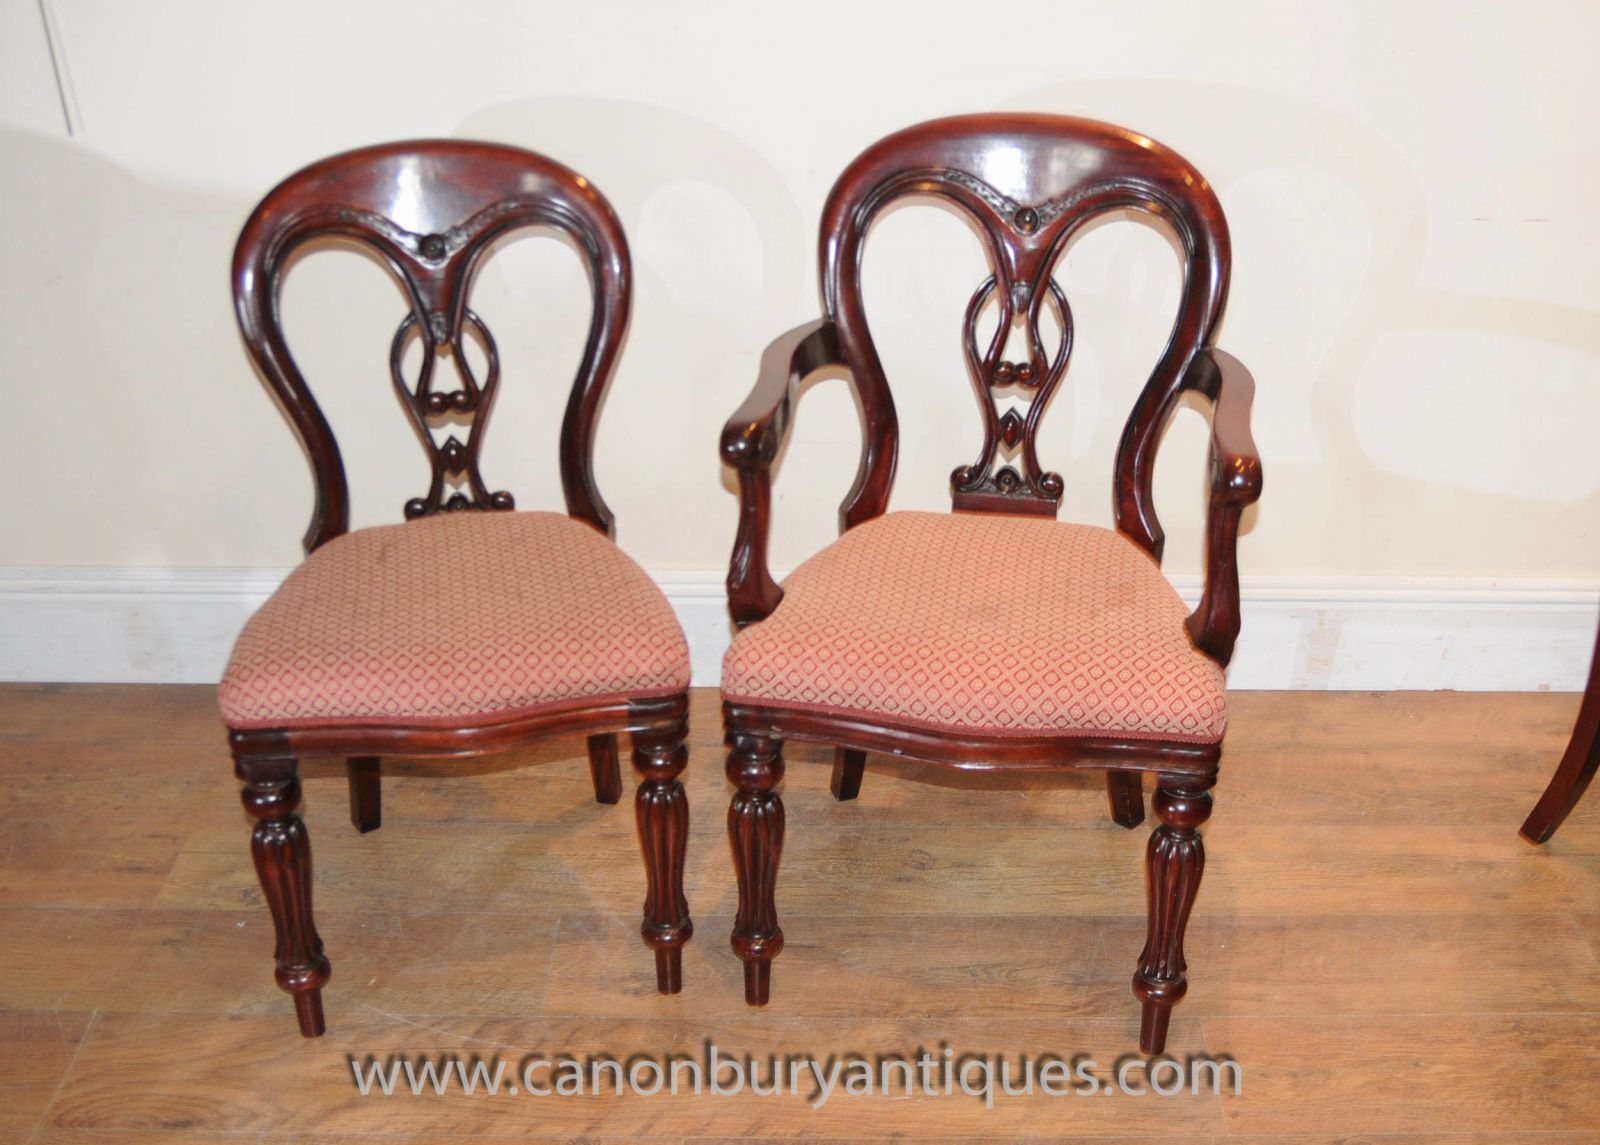 Victorian Dining Chairs www_canonburyantiques_com (2)-2